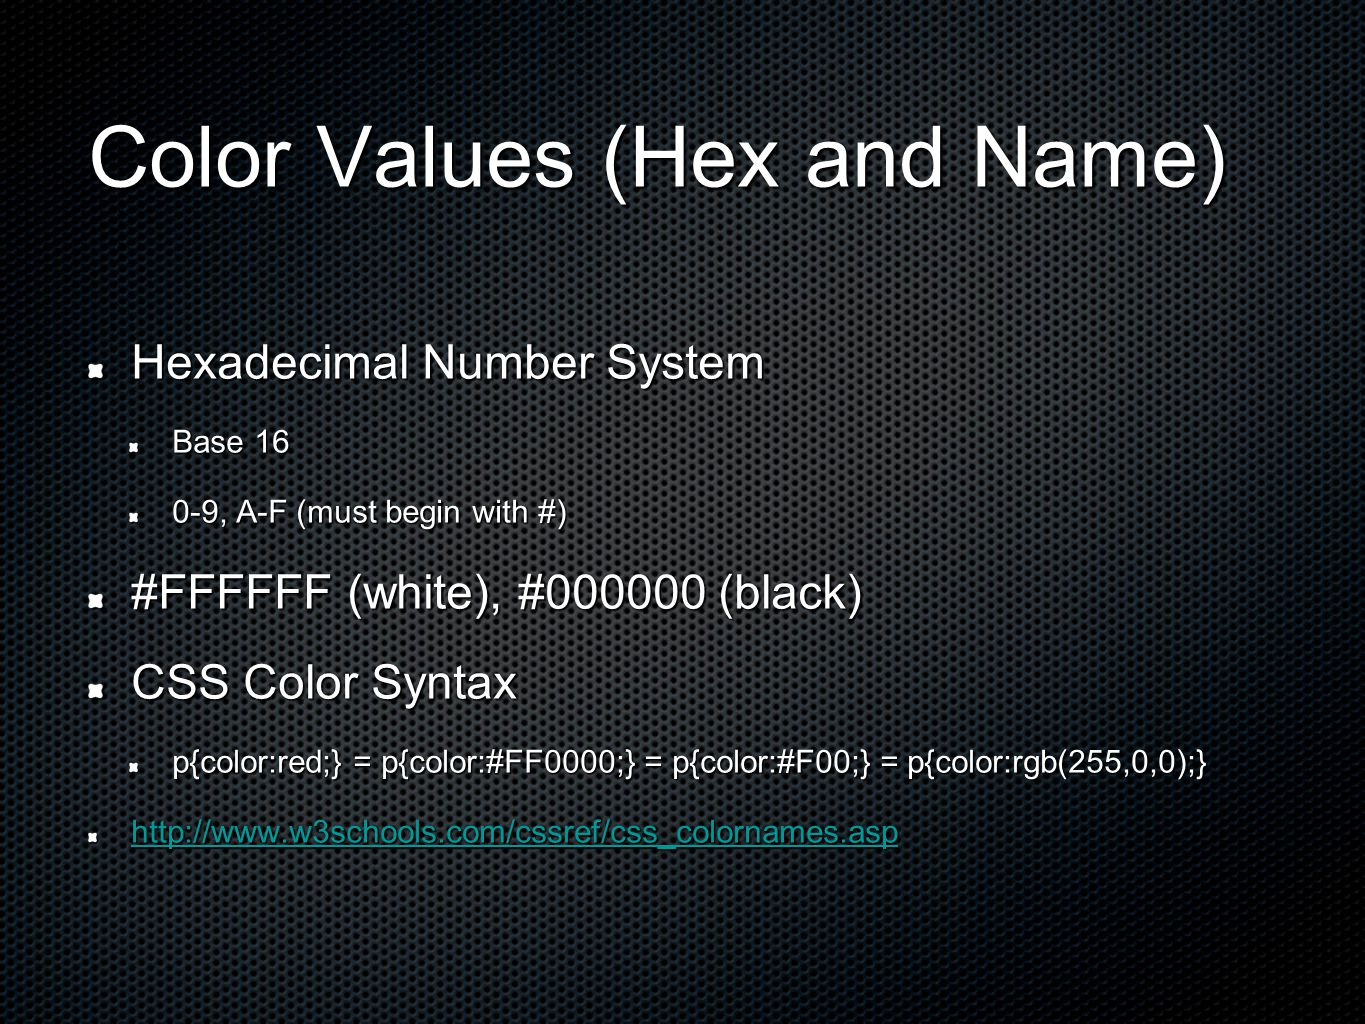 Color Values (Hex and Name) Hexadecimal Number System Base 16 0-9, A-F (must begin with #) #FFFFFF (white), #000000 (black) CSS Color Syntax p{color:red;} = p{color:#FF0000;} = p{color:#F00;} = p{color:rgb(255,0,0);} http://www.w3schools.com/cssref/css_colornames.asp